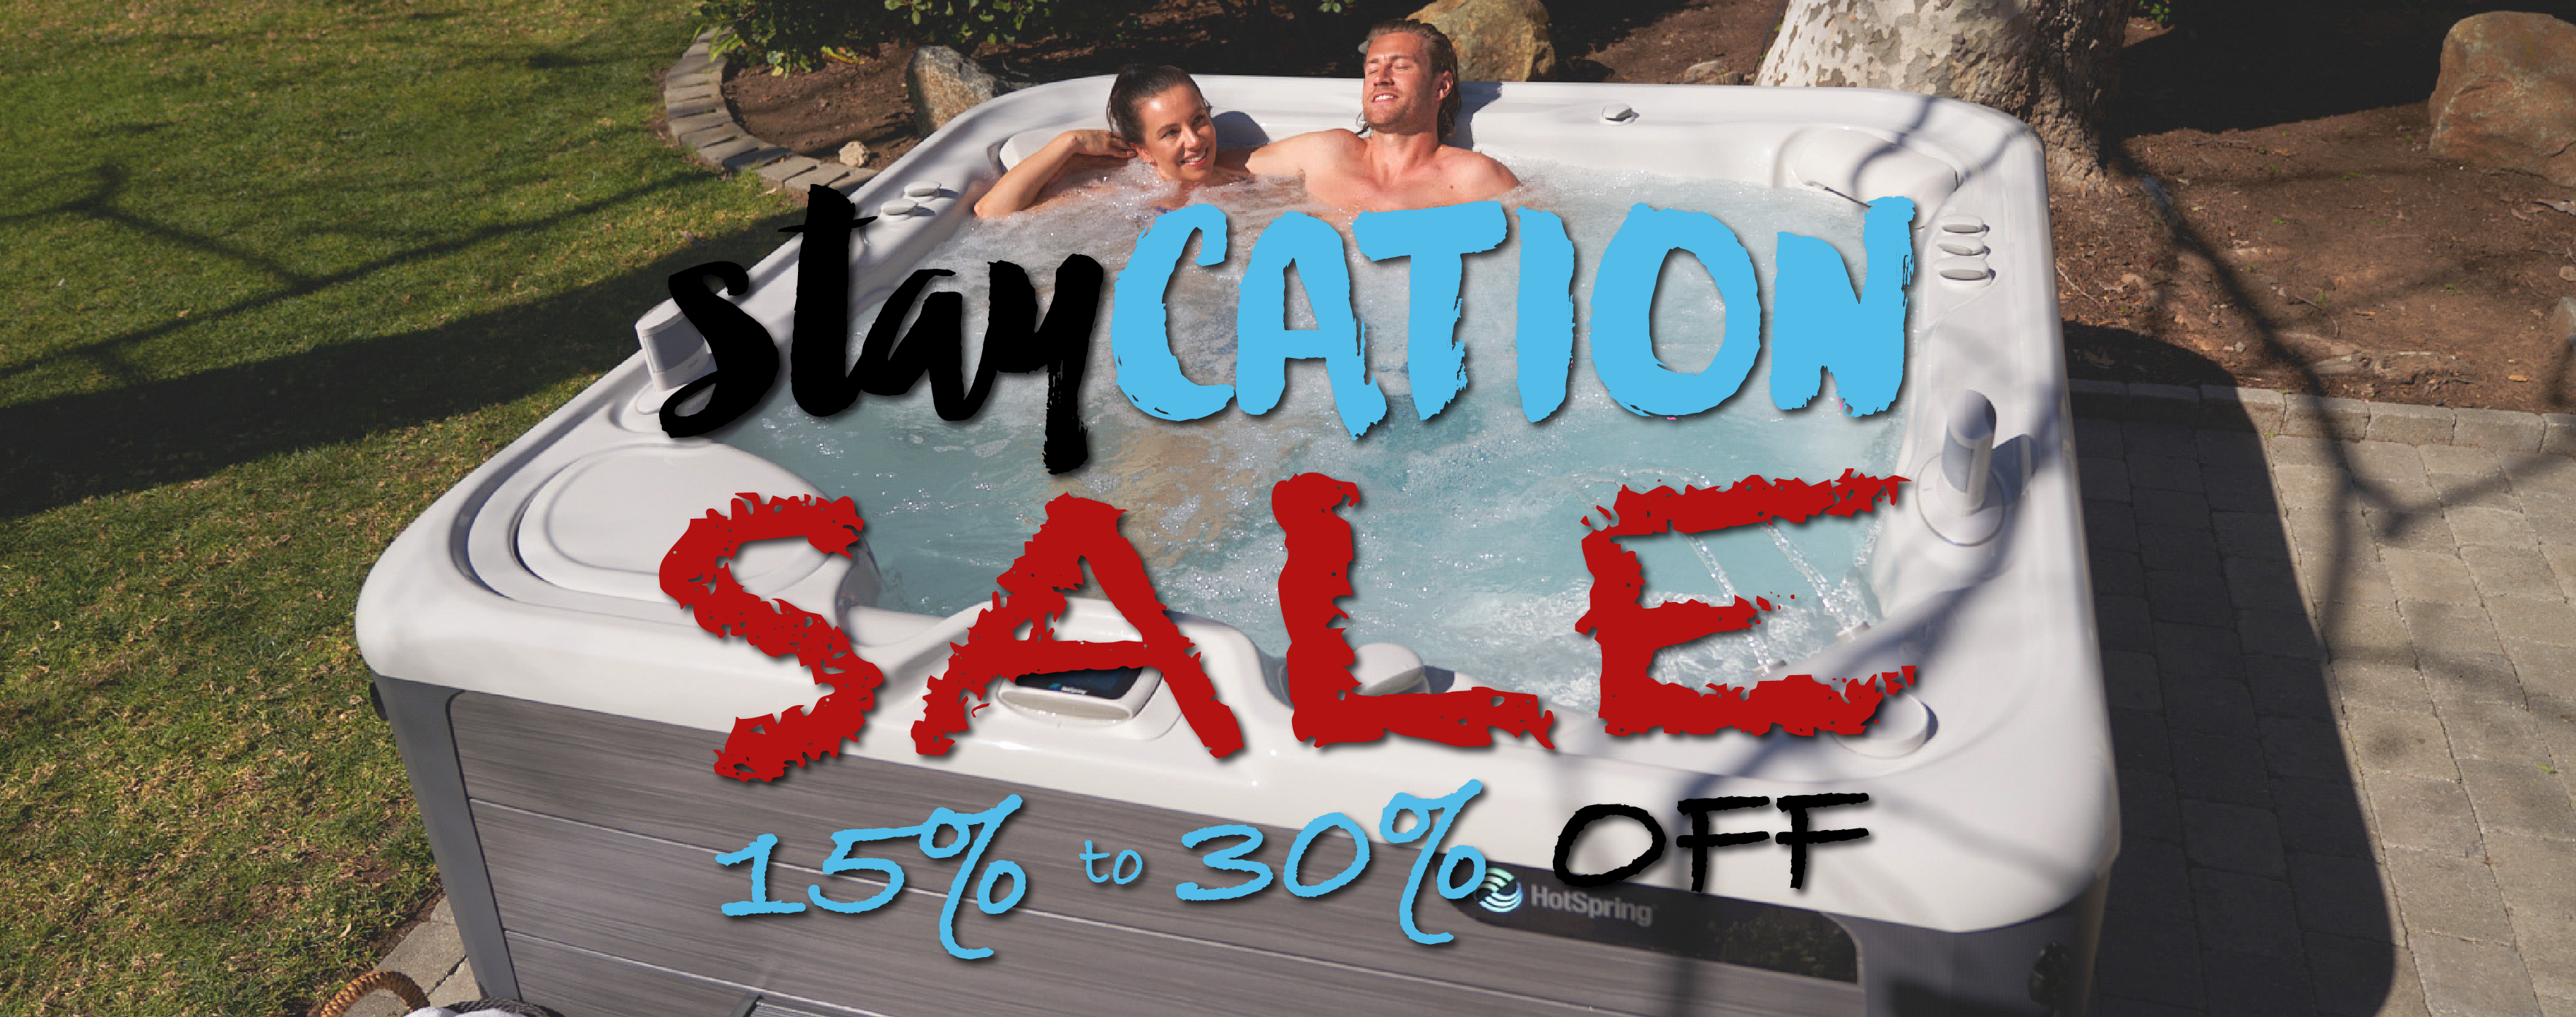 Staycation Sale - 15% to 30% Off